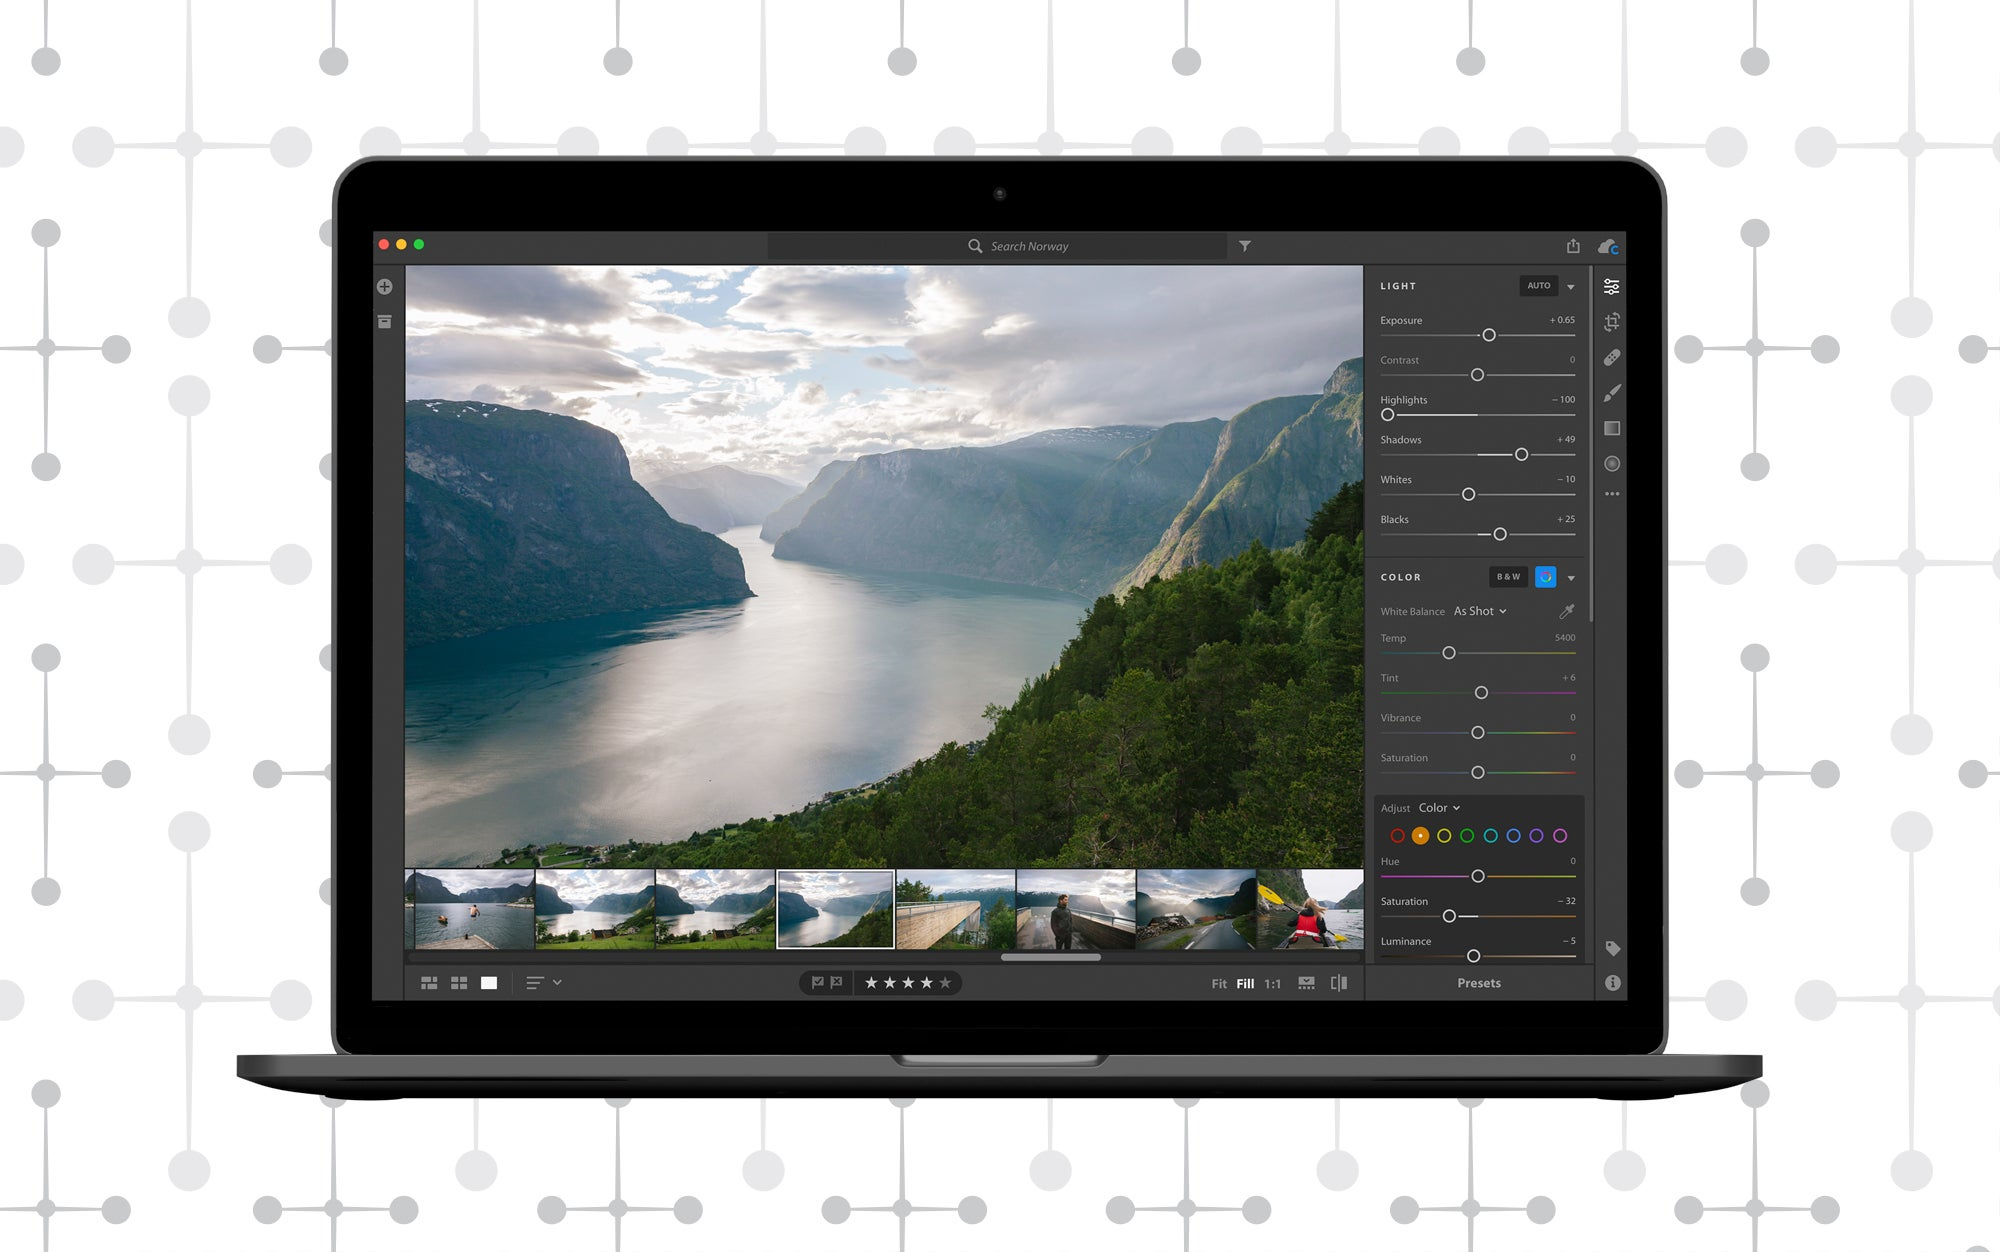 Adobe Creative Cloud Photography plan with 20GB storage | 1 Year Subscription